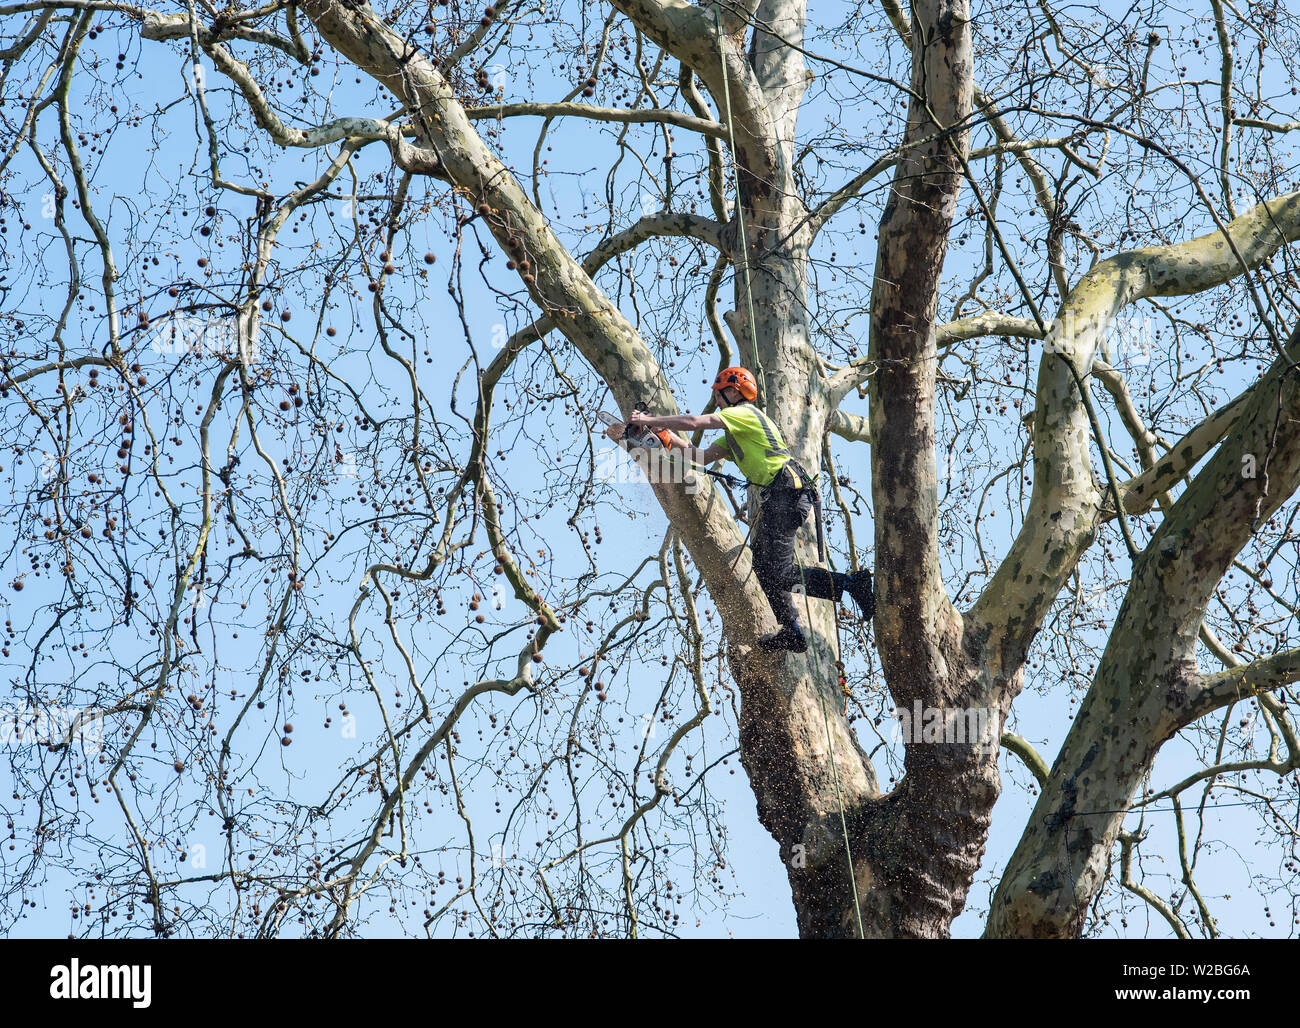 A man using a chainsaw in a tree to trim branches. - Stock Image